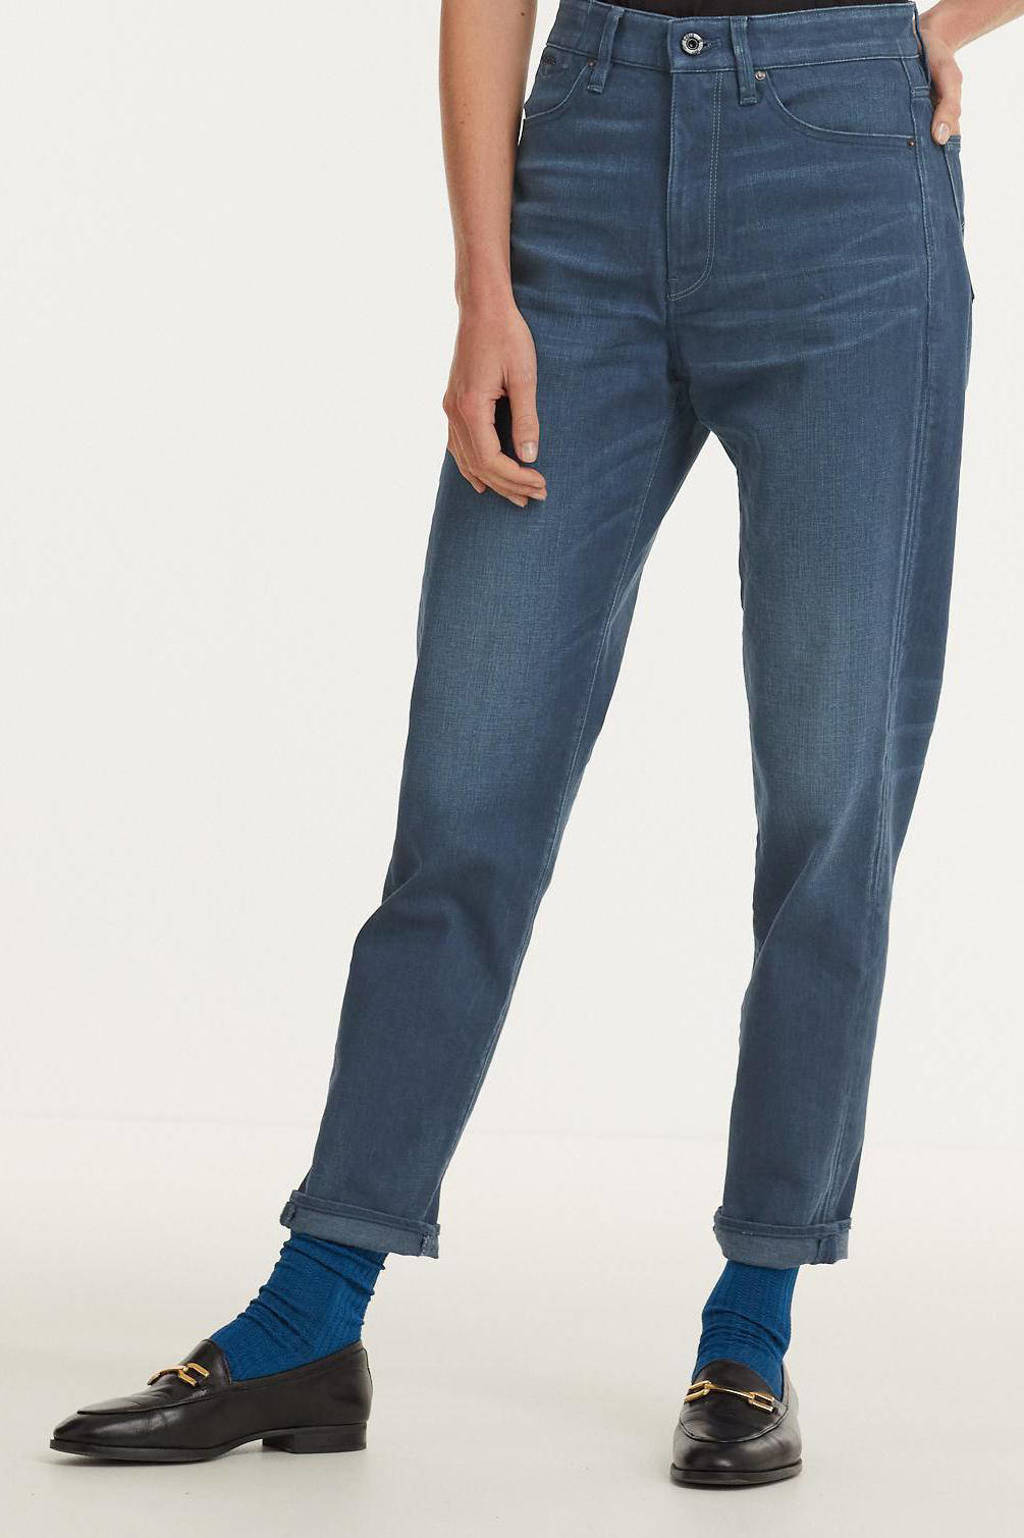 G-Star RAW Janeh Mom jeans high waist straight fit jeans worn in rivulet